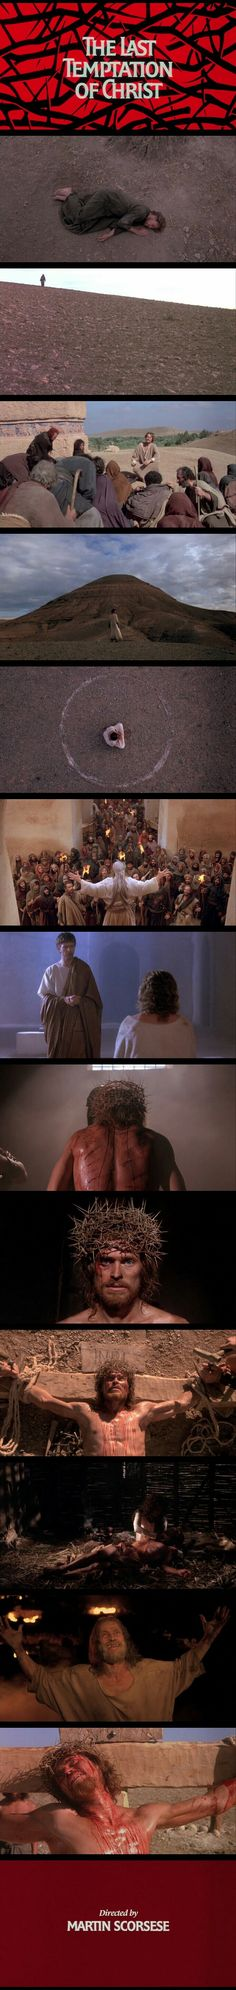 The Last Temptation of Christ (1988) Directed by Martin Scorsese